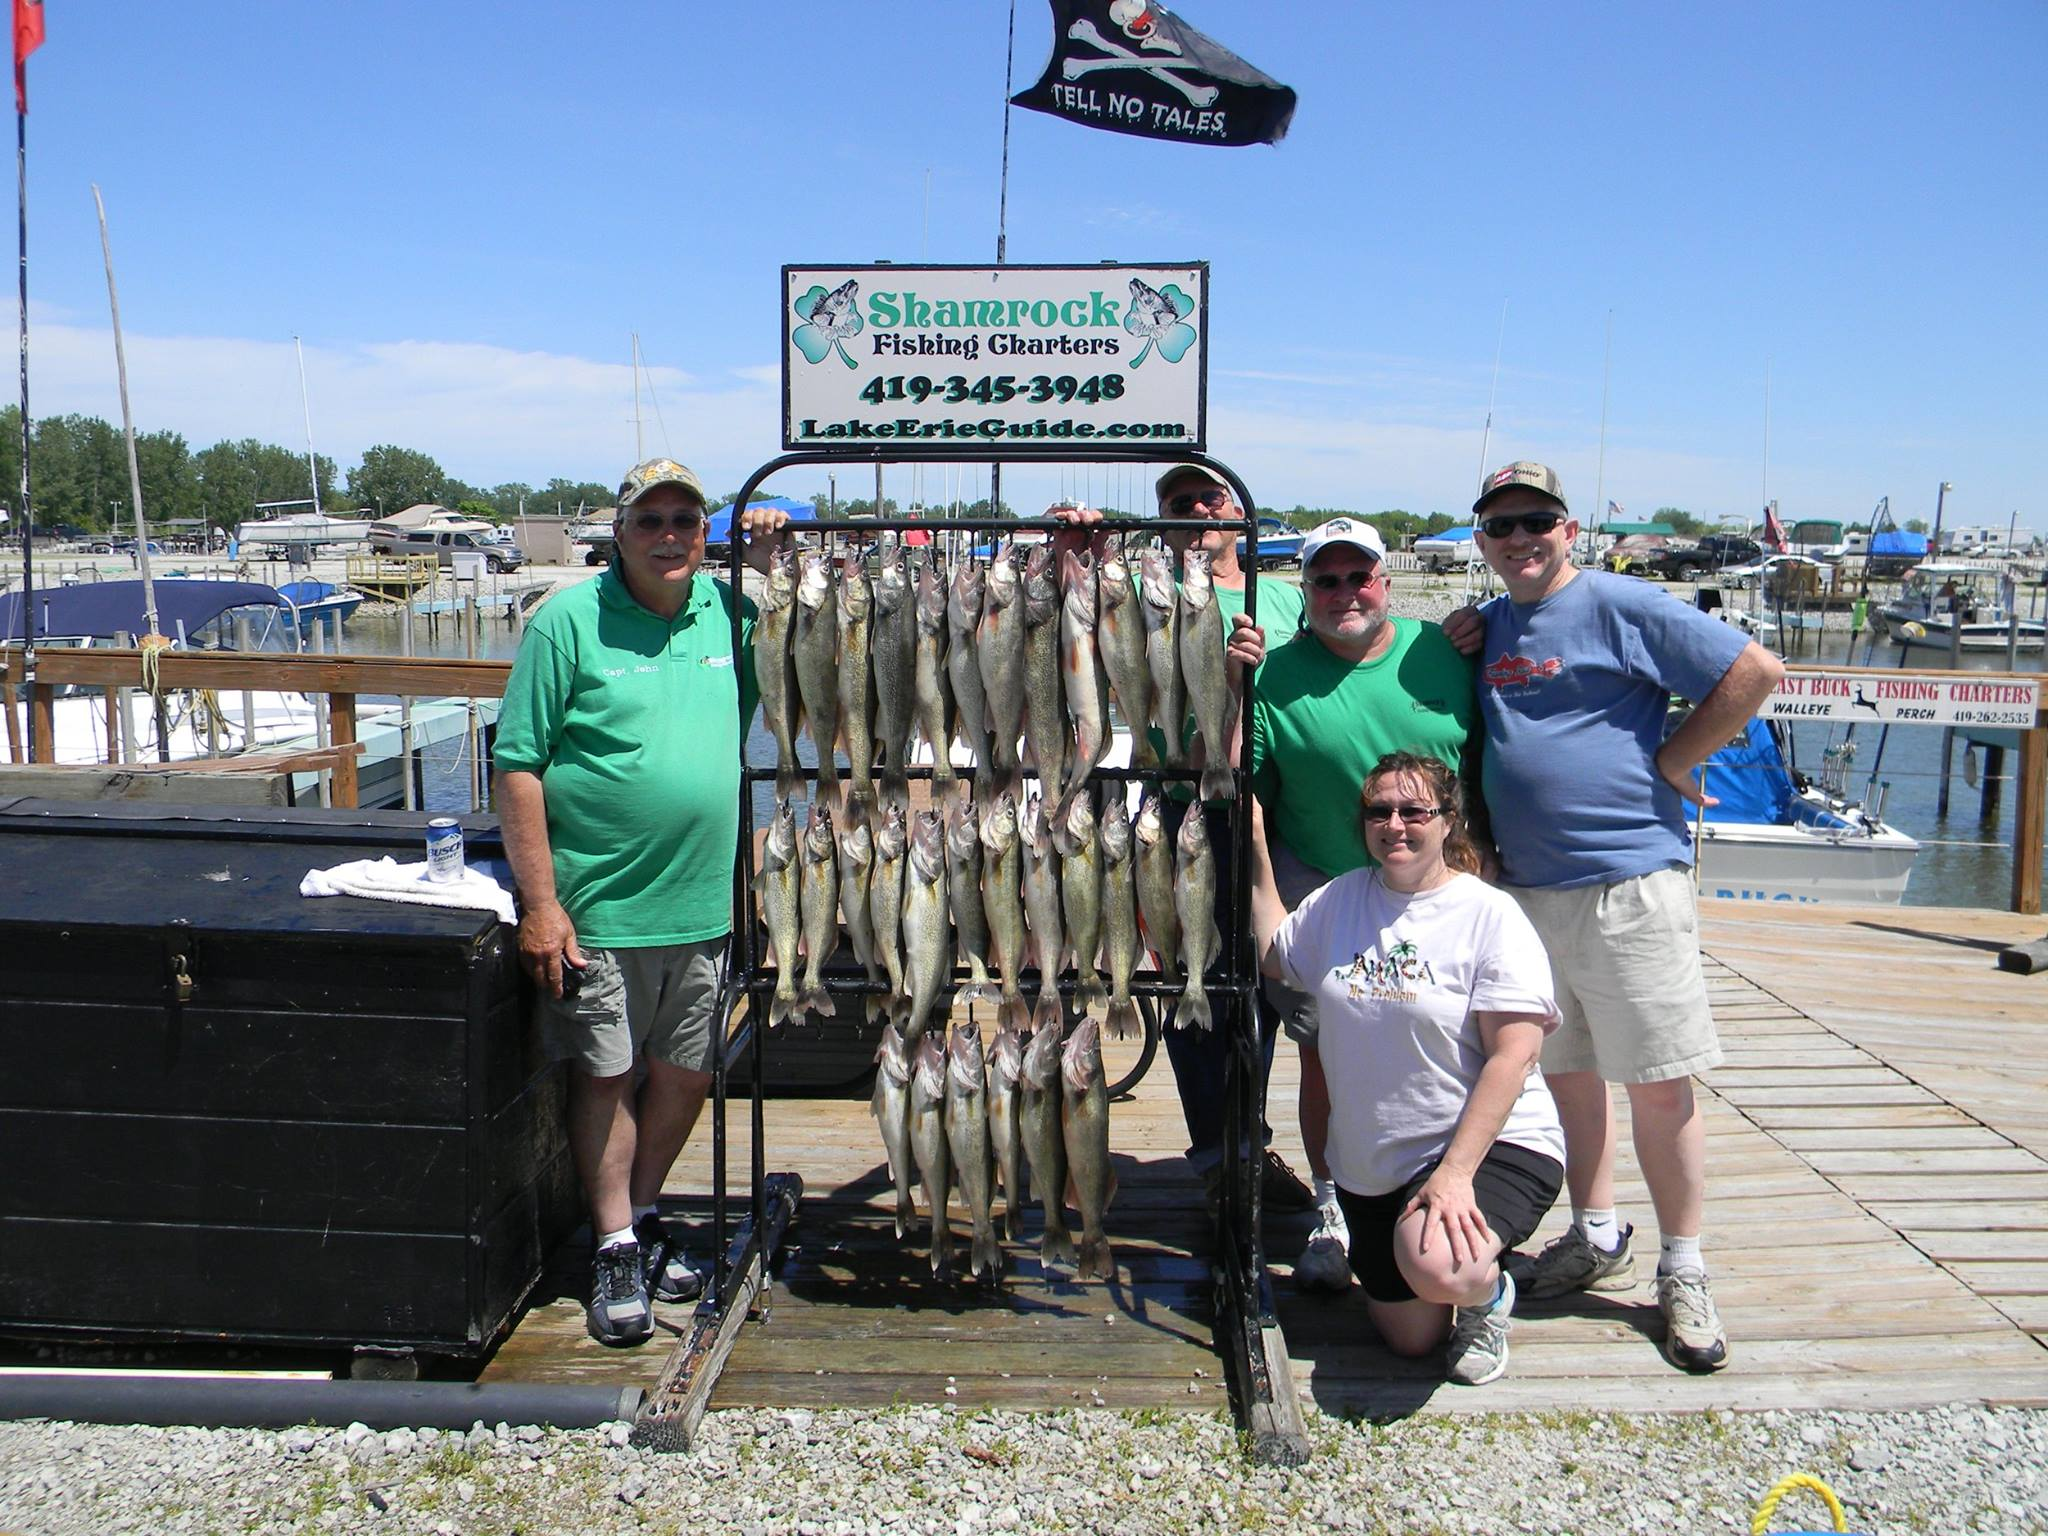 Lake erie fishing reports from shamrock fishing charters for Ohio one day fishing license